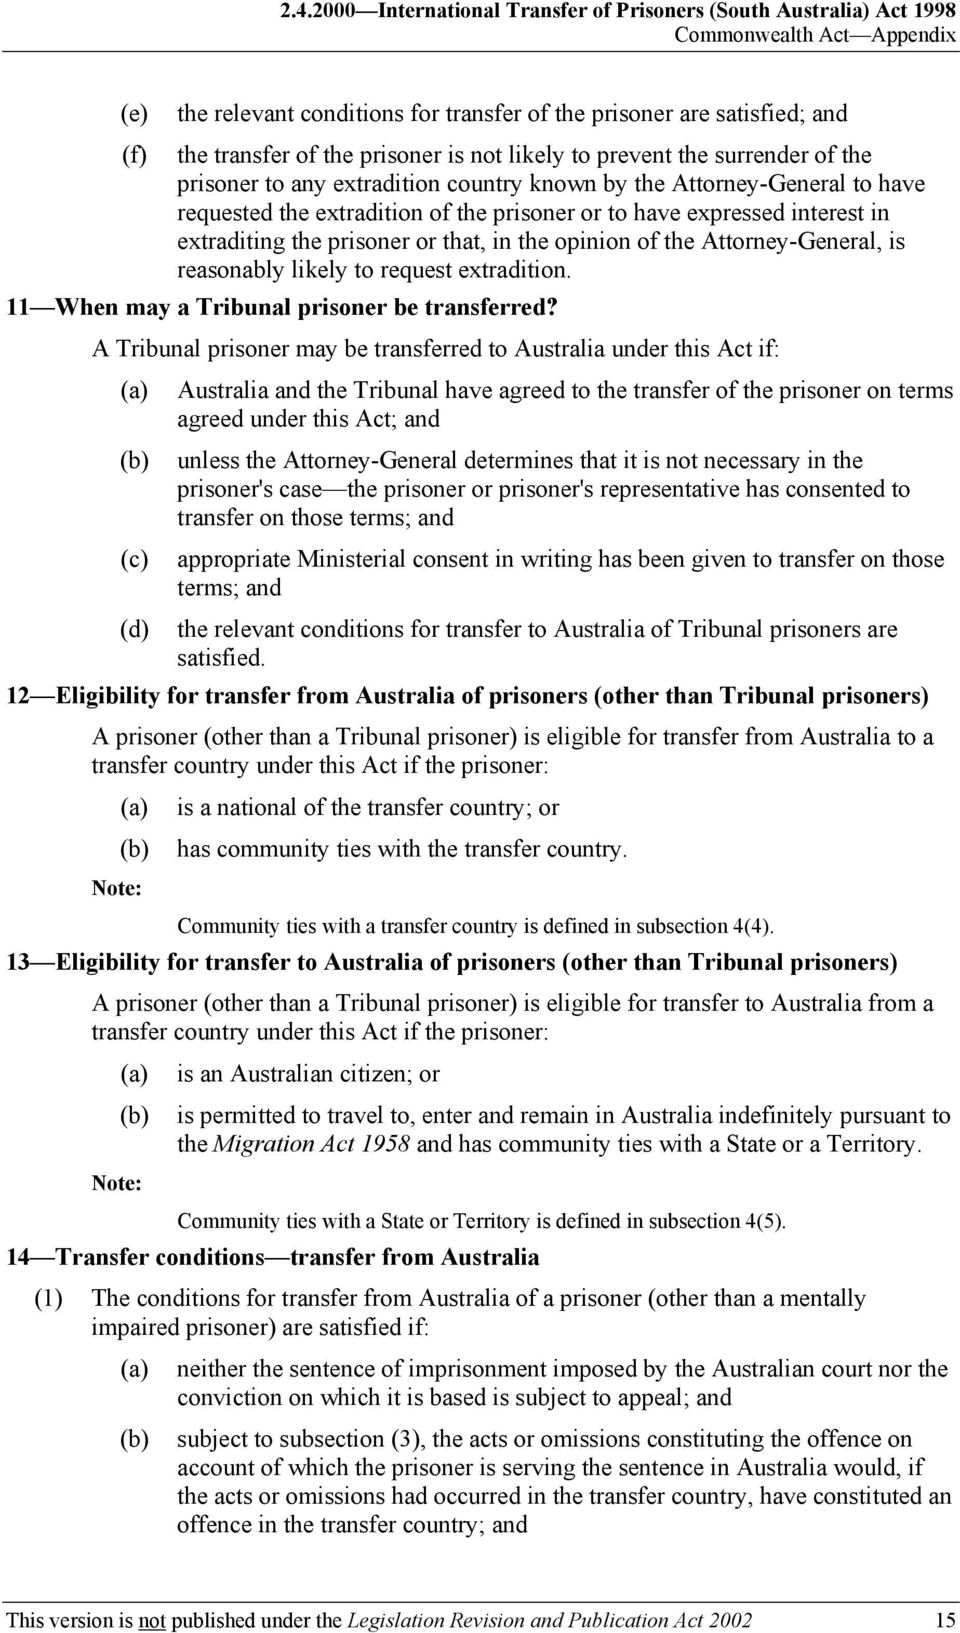 interest in extraditing the prisoner or that, in the opinion of the Attorney-General, is reasonably likely to request extradition. 11 When may a Tribunal prisoner be transferred?